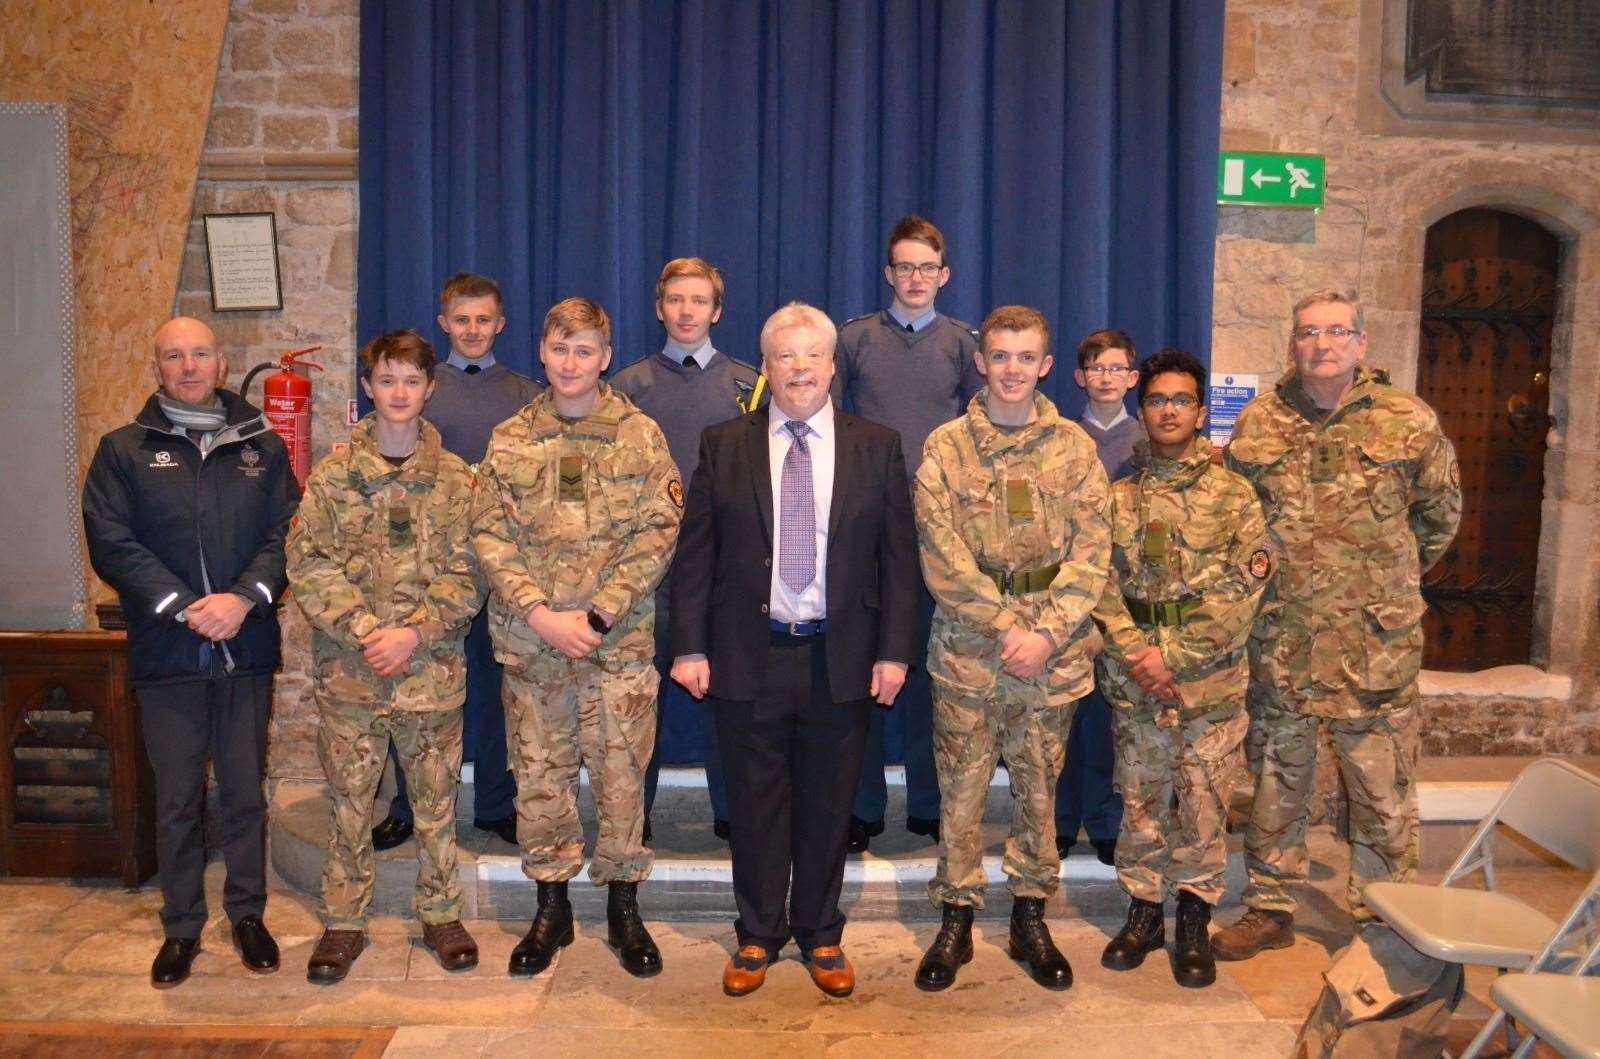 King's School students meet former soldier Simon Weston who was badly injured in the Falklands War. (22298525)